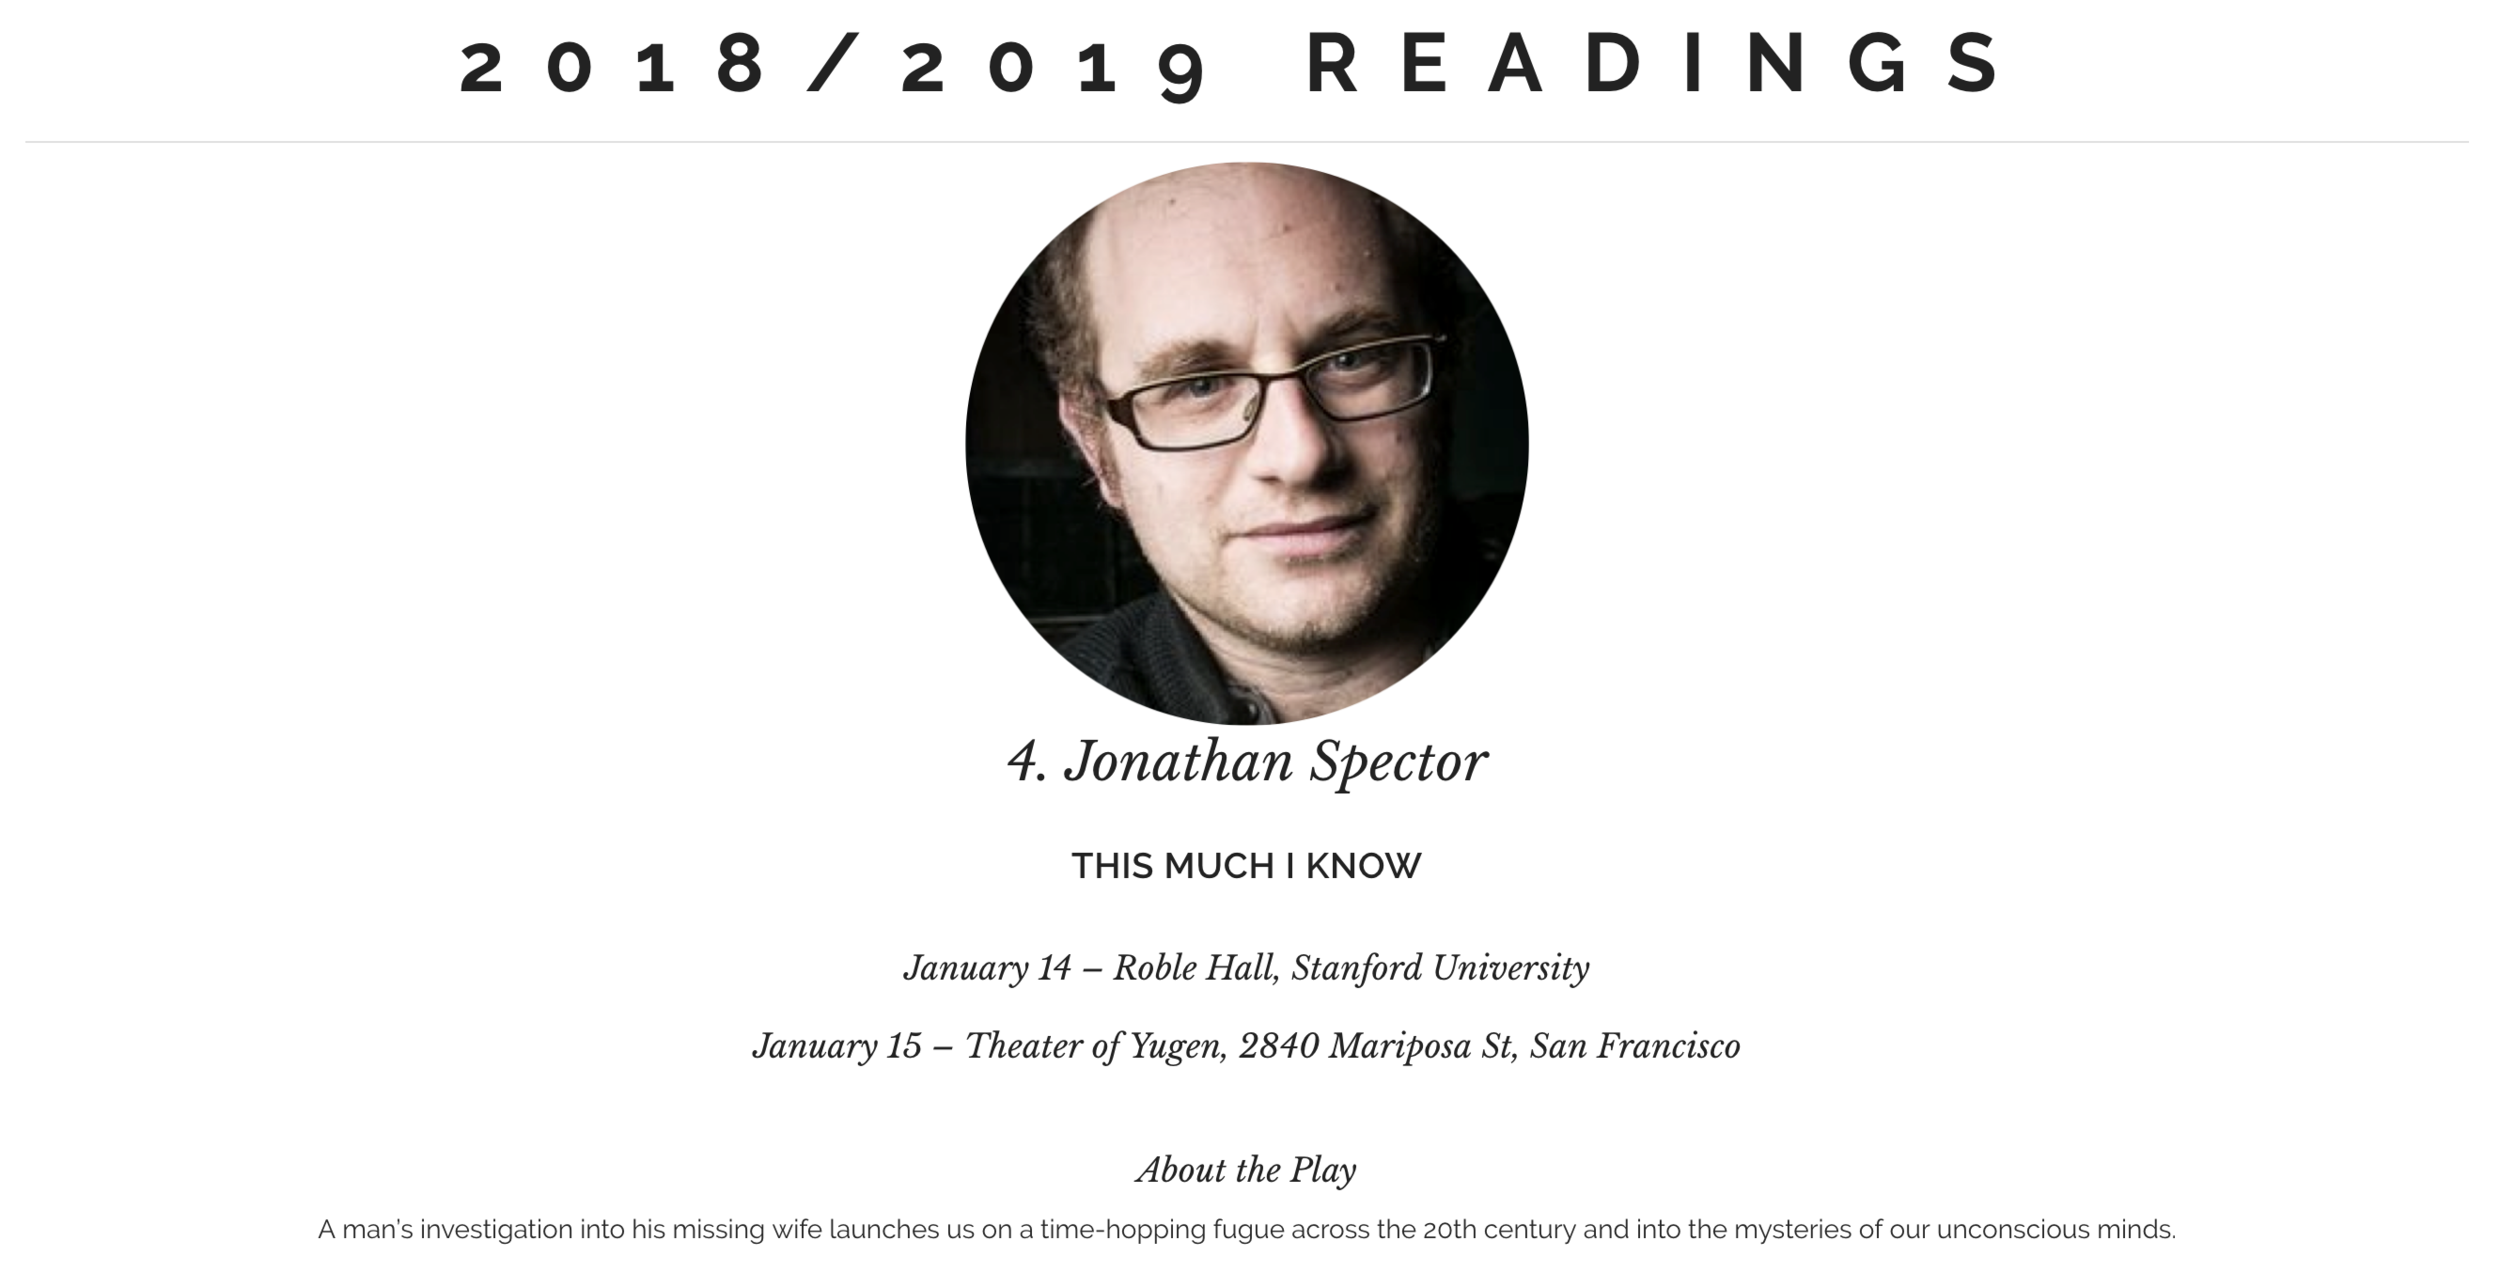 Rough Reading - Patrick will be performing in the staged reading of Jonathan Spector's new play THIS MUCH I KNOW on Monday, January, 14th and Tuesday, January 15th, 2019. Details HERE.